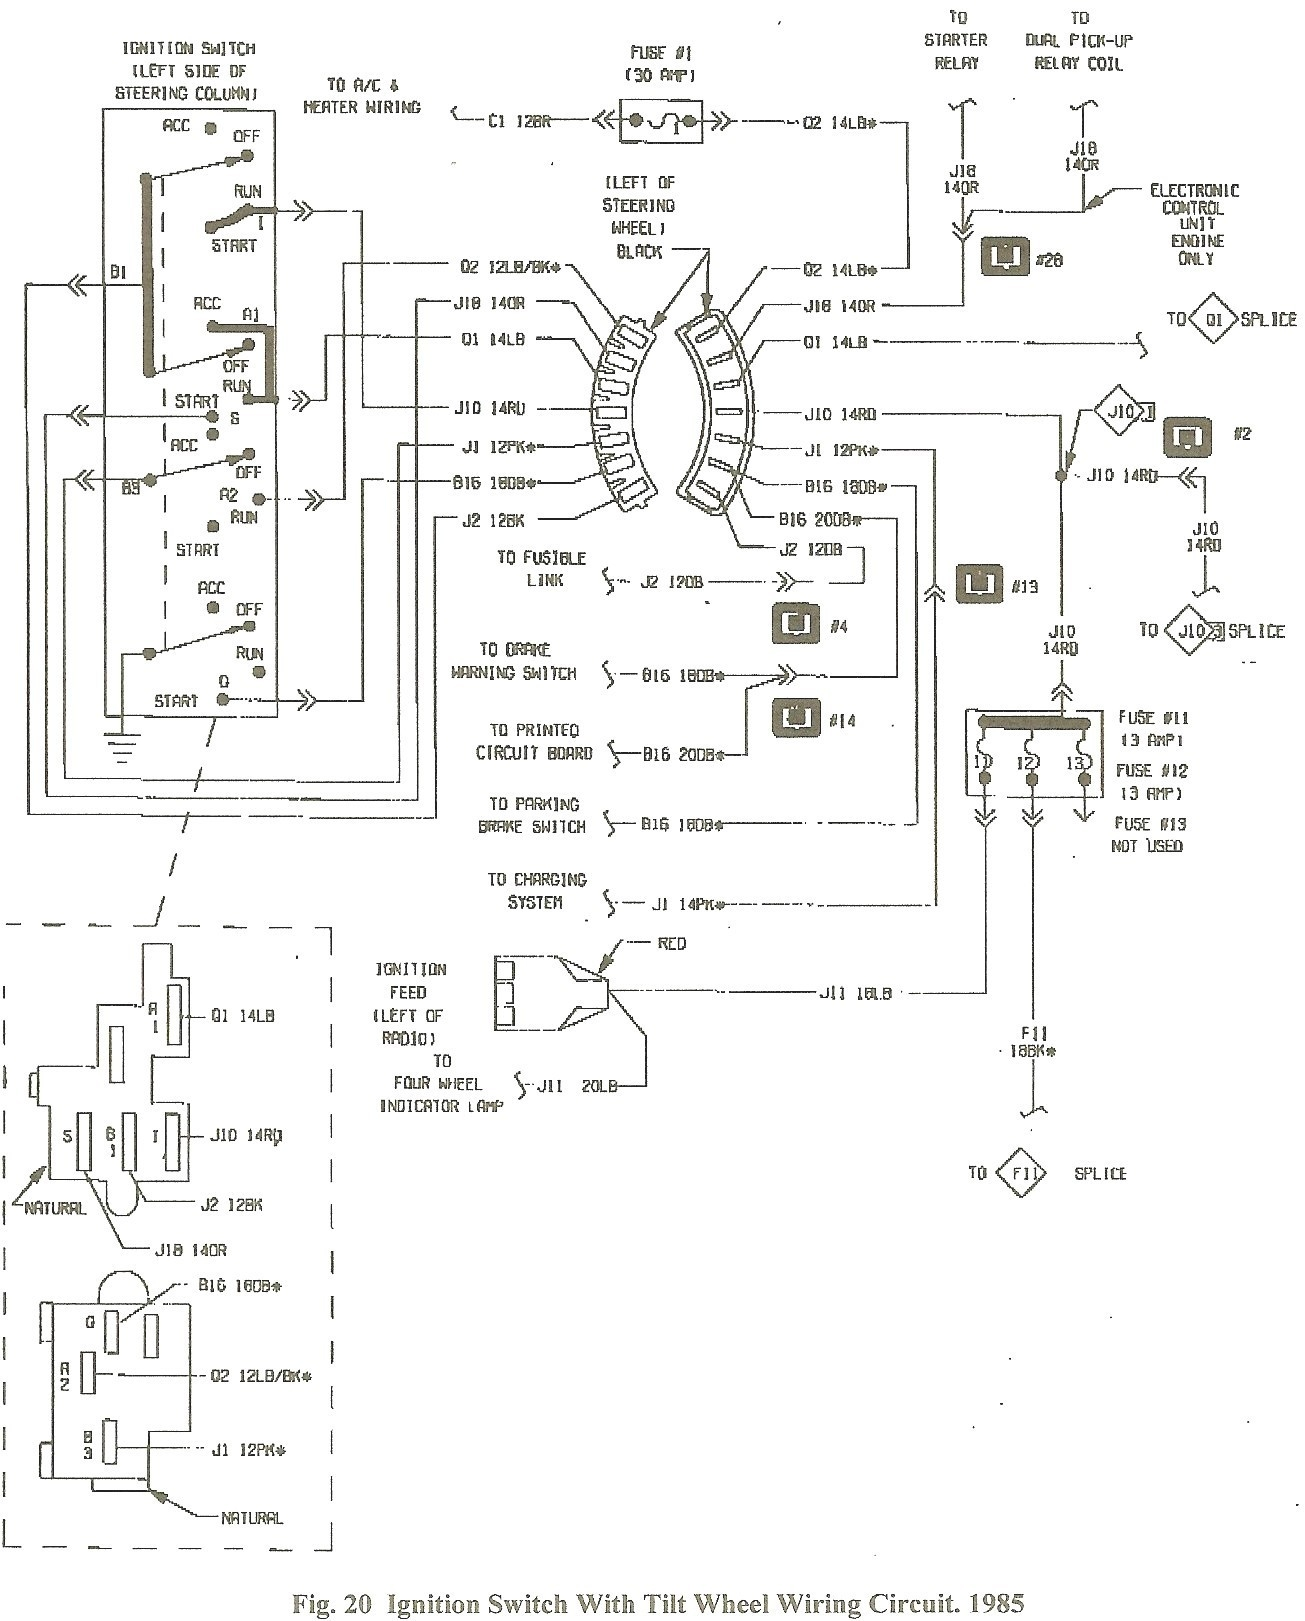 2001 Dodge Ram 1500 Transmission Wiring Diagram